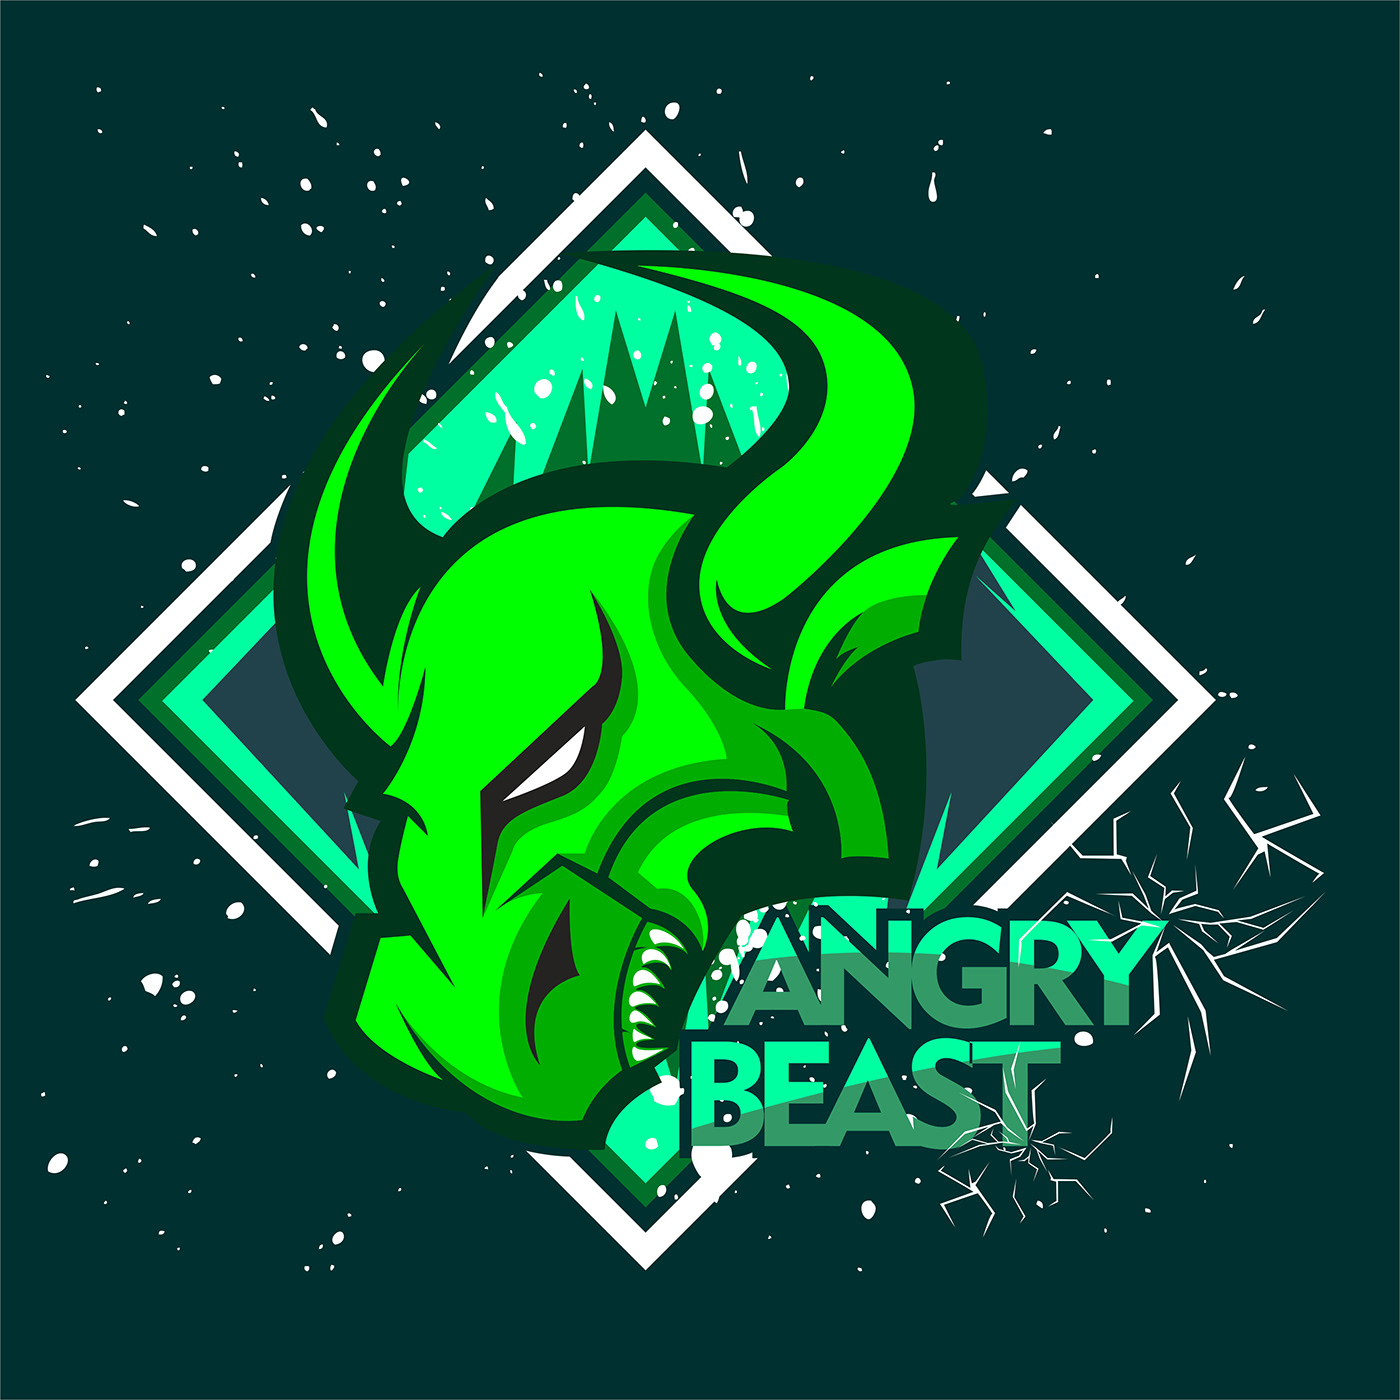 Angry bull or angry buffalo to descriptive the team club and esport team and the other team